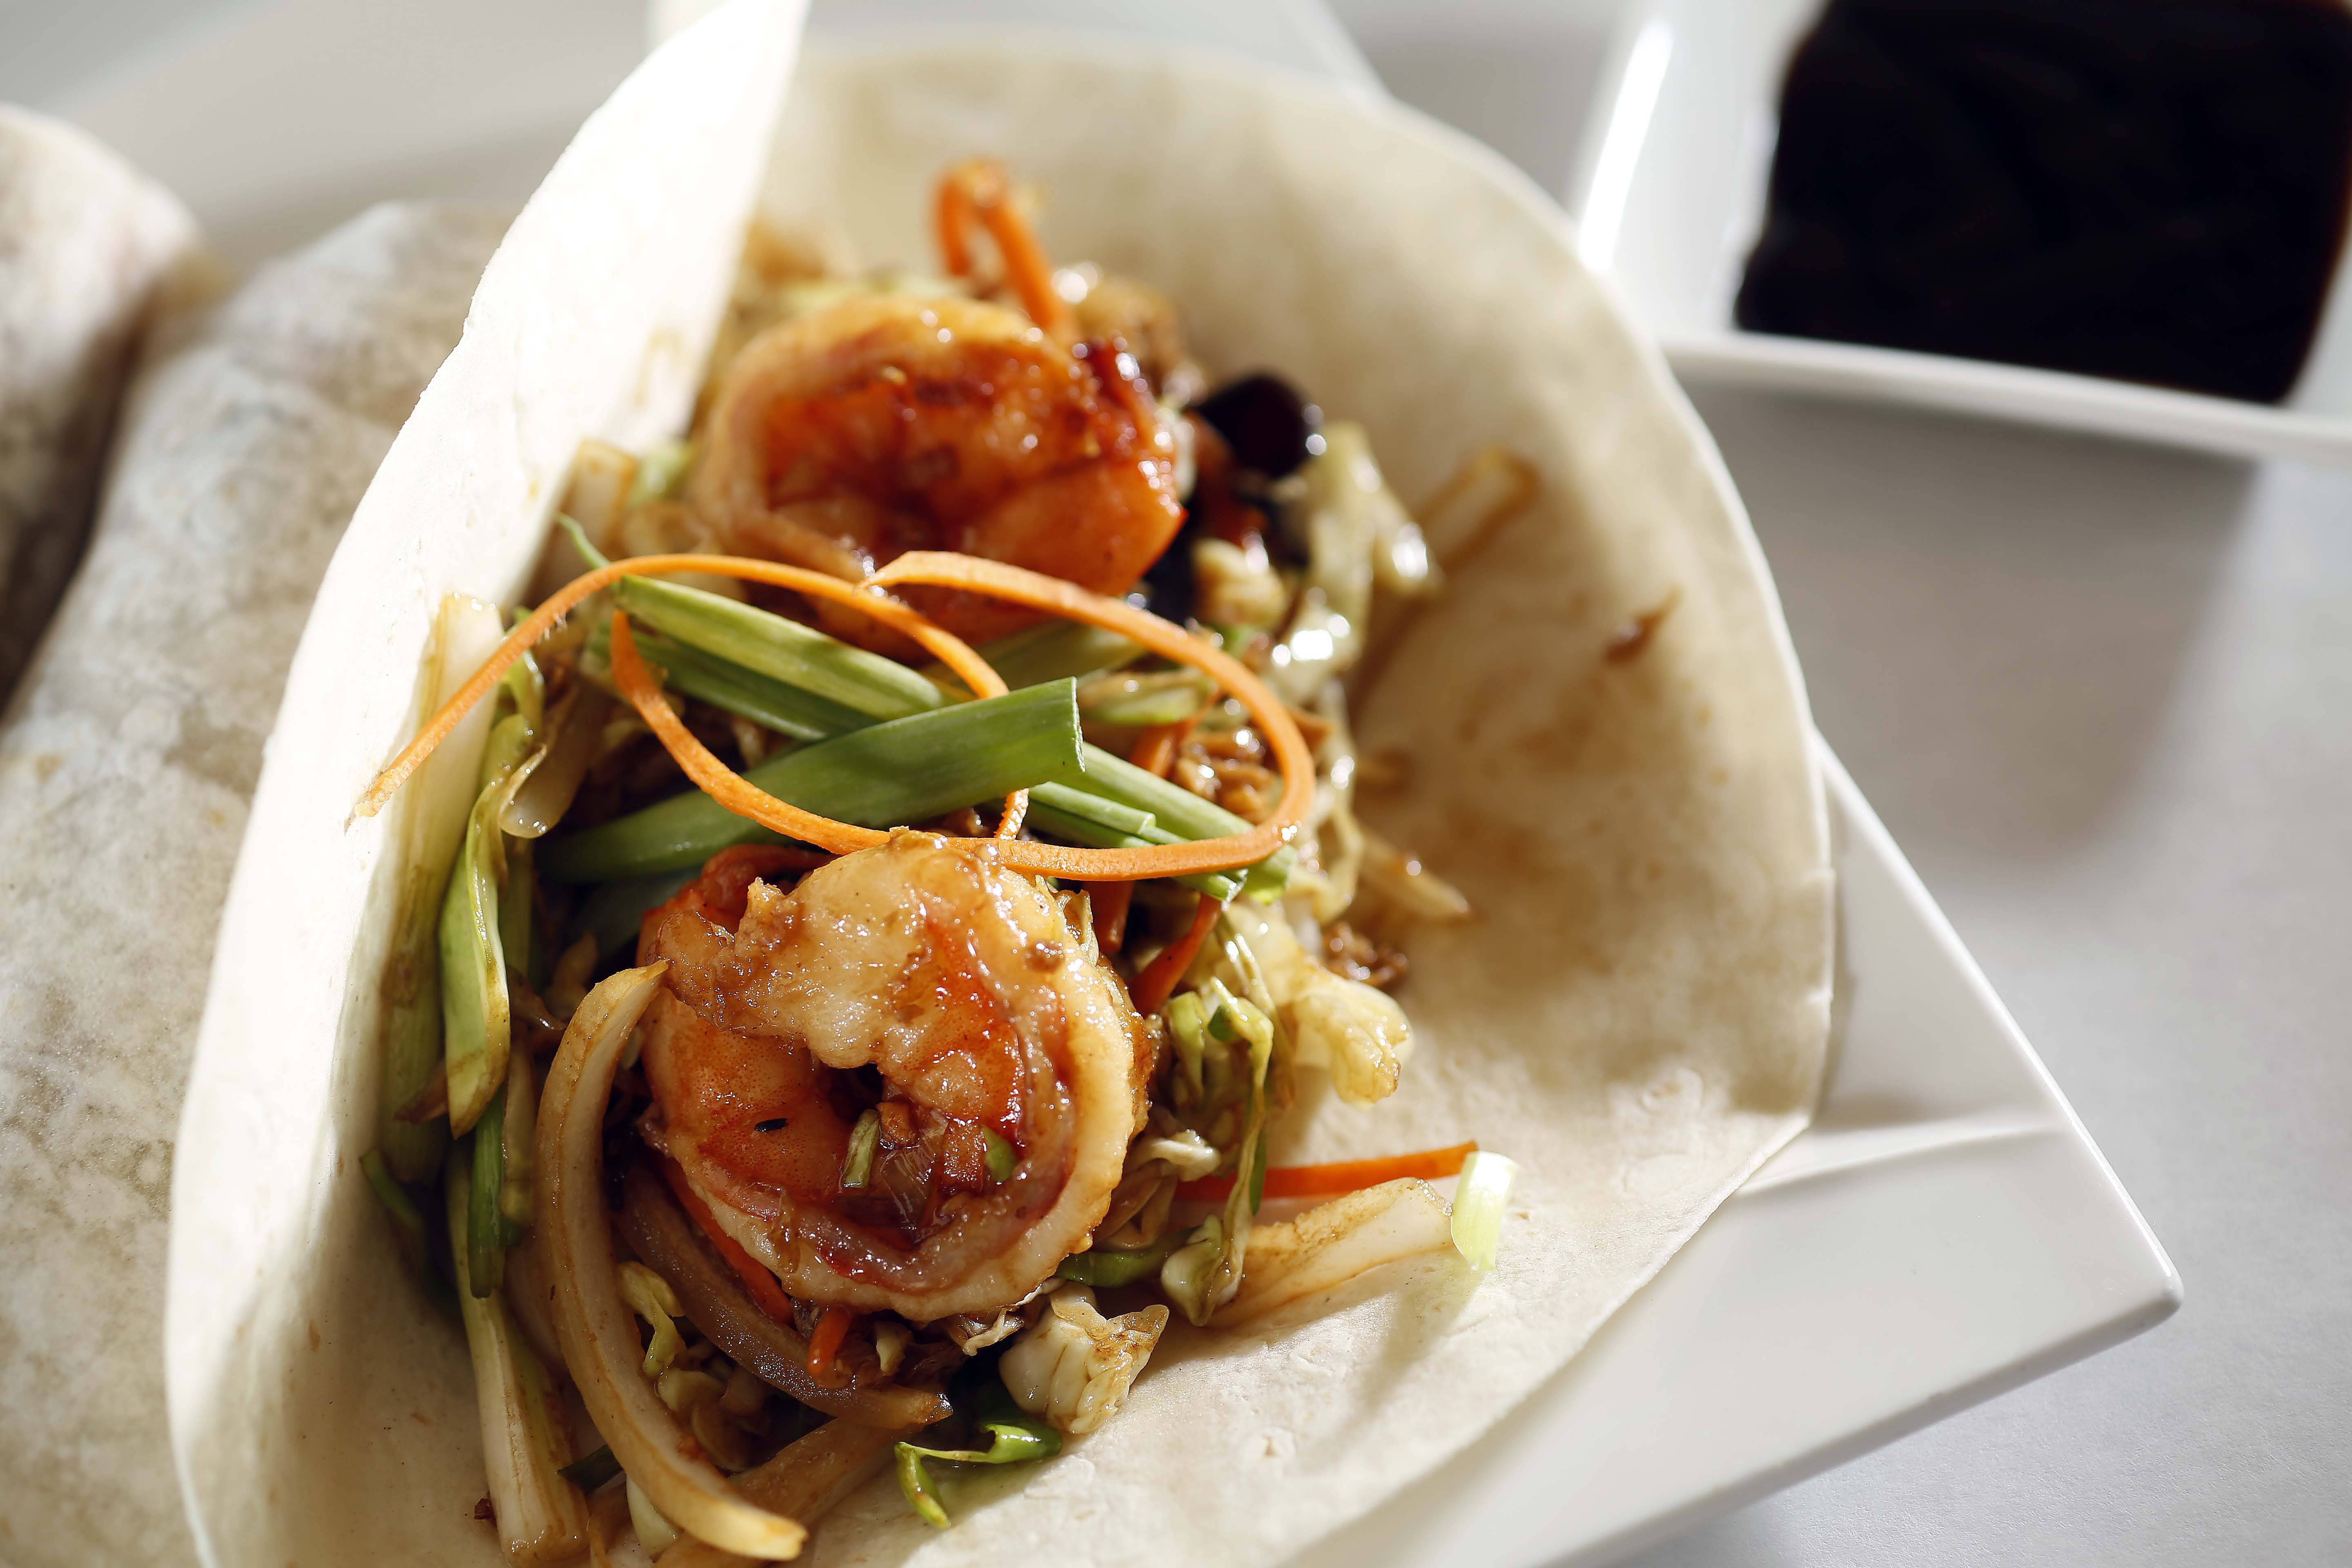 Four jumbo shrimp are tucked into crepe-like wraps at Liu Brothers Asian Bistro in St. Charles.